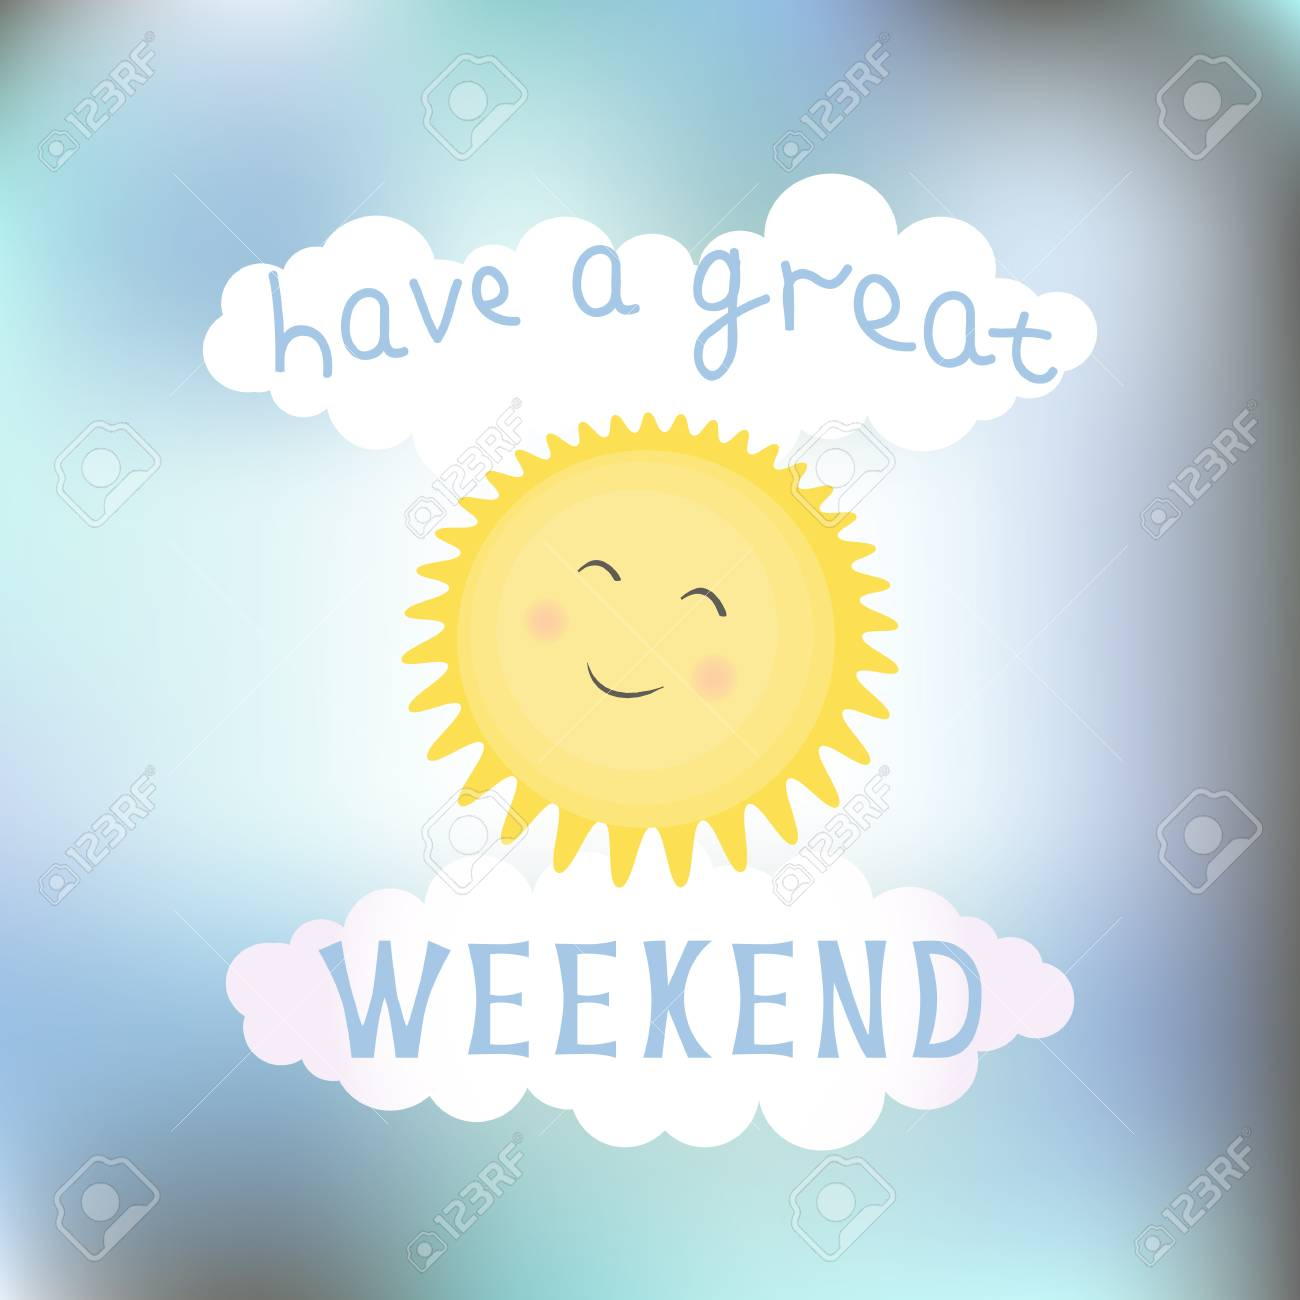 """Vector illustration with smiling sun, clouds and letter """"Have a great weekend"""" on blurred background. Typography card, template for poster, decoration design, greeting card or banner, article. - 106790875"""